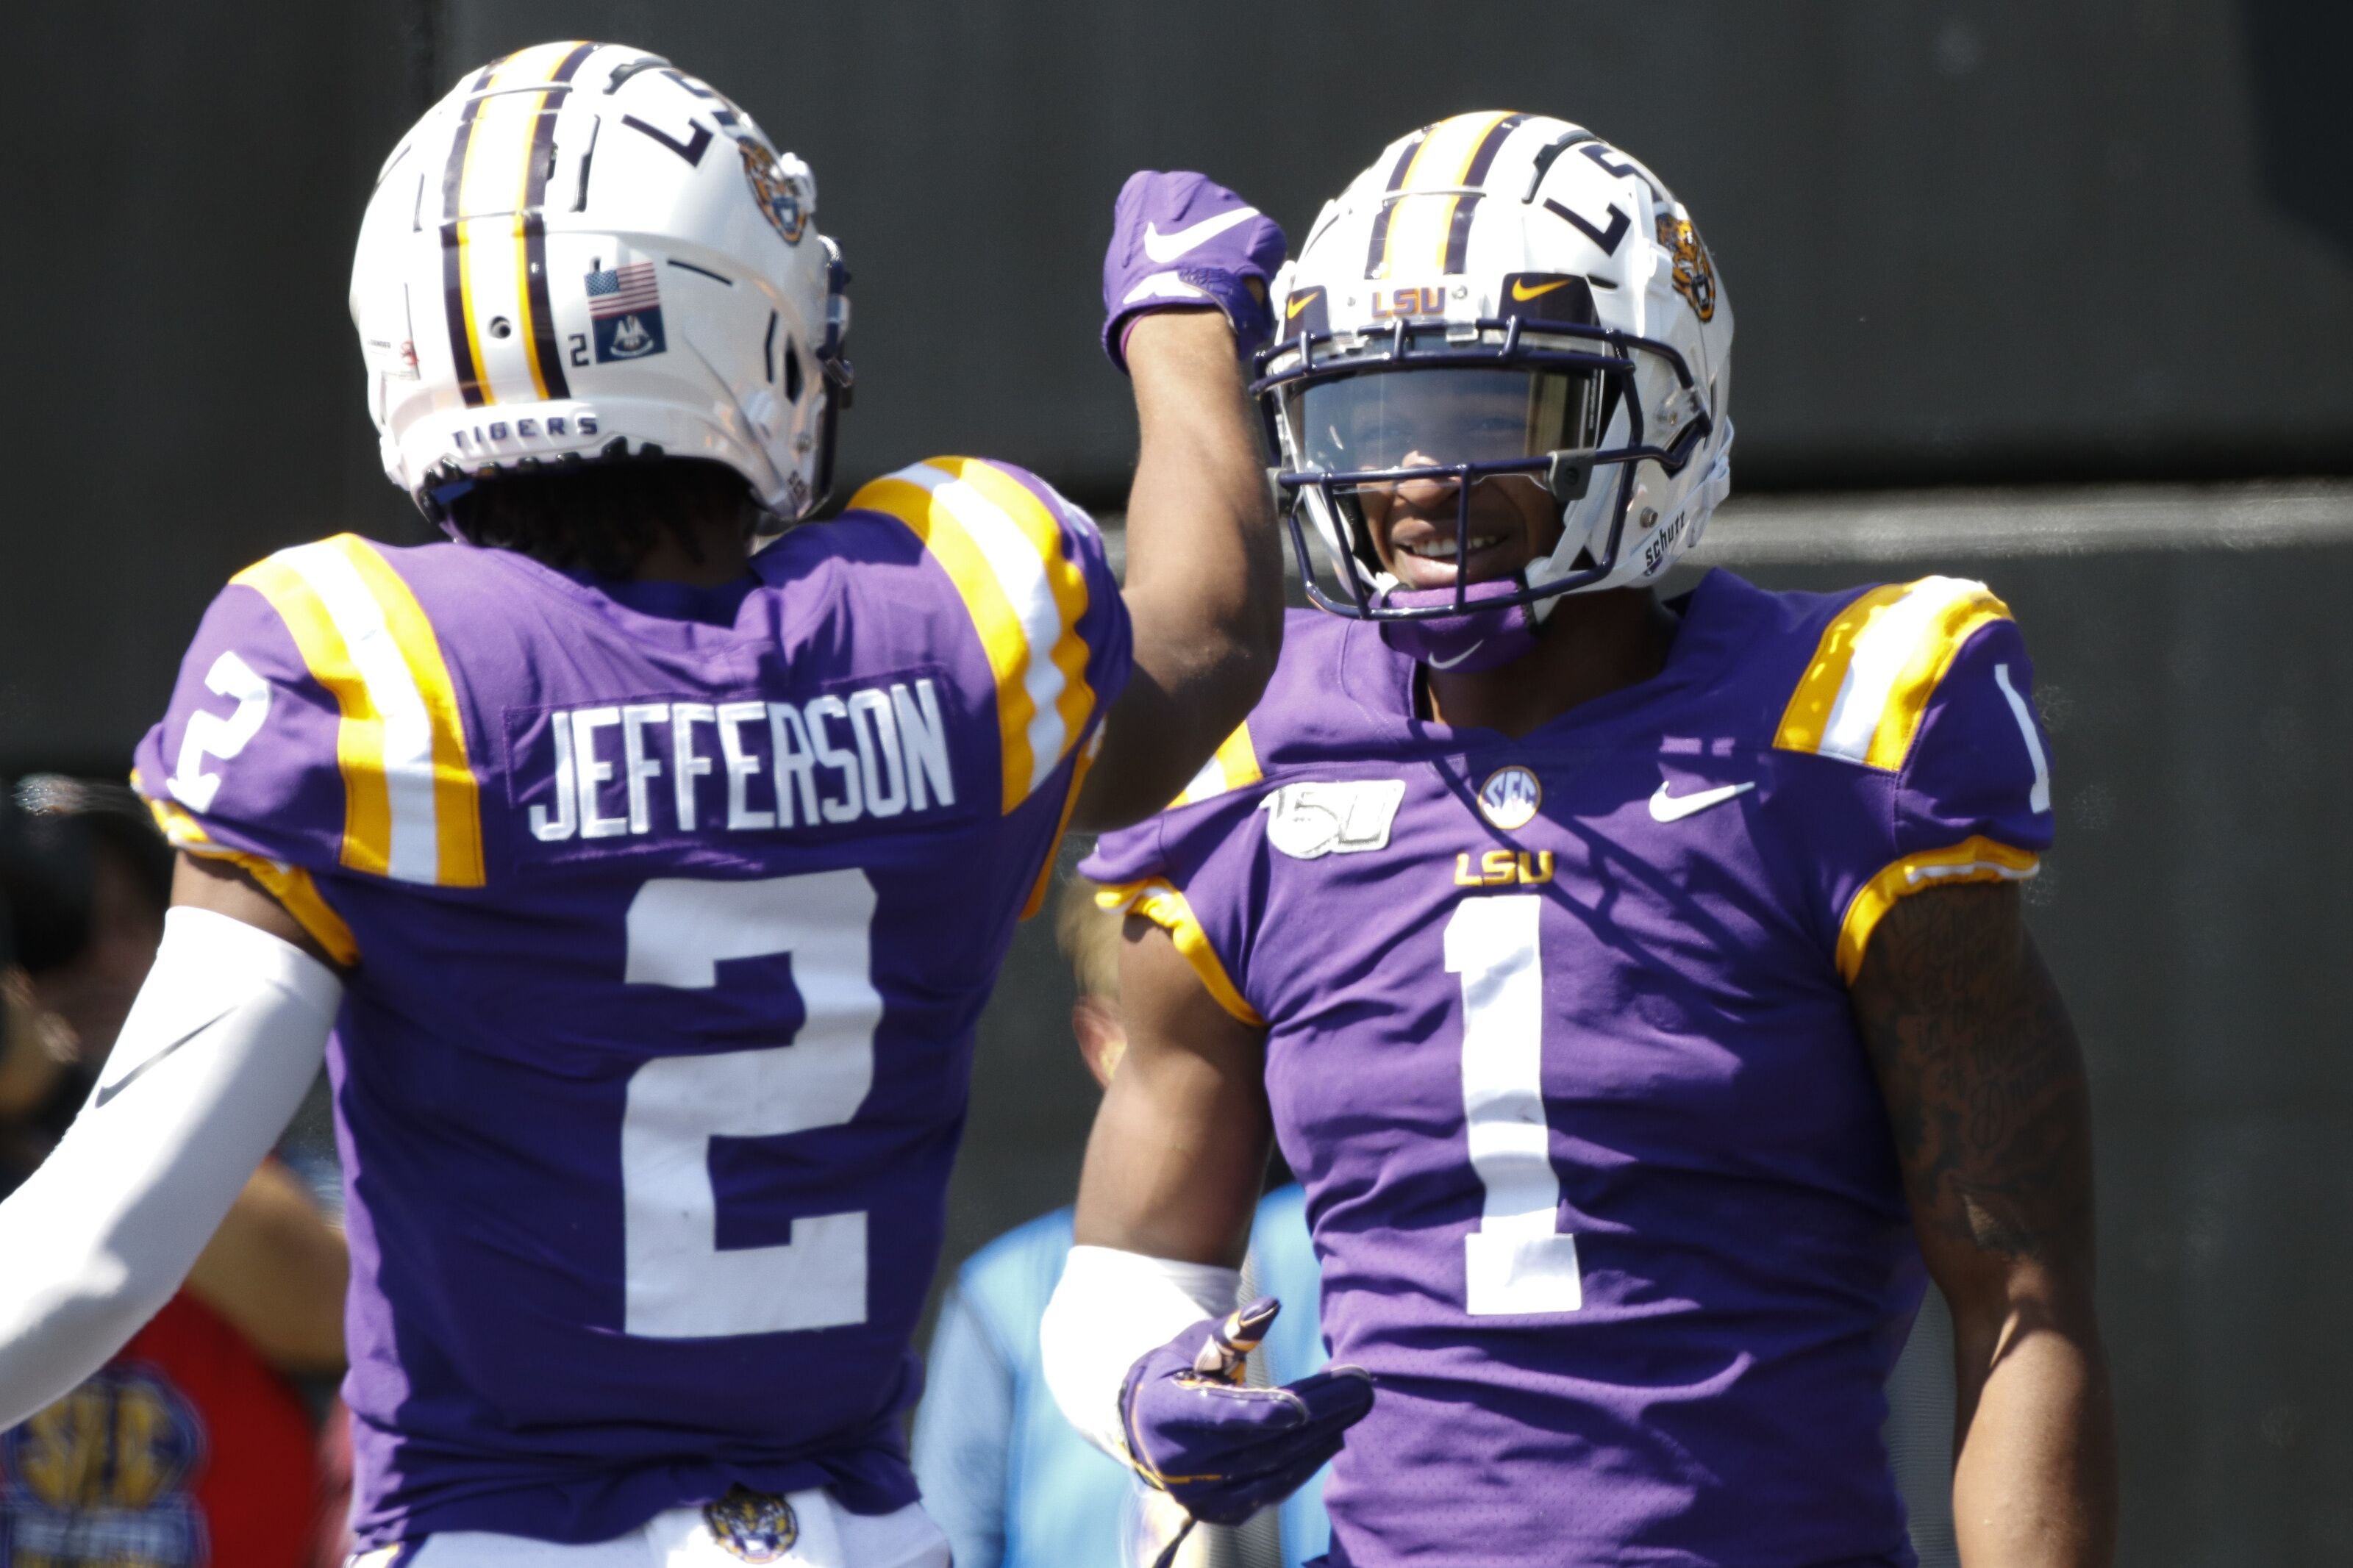 College football: 5 best bets to take to the bank in Week 8